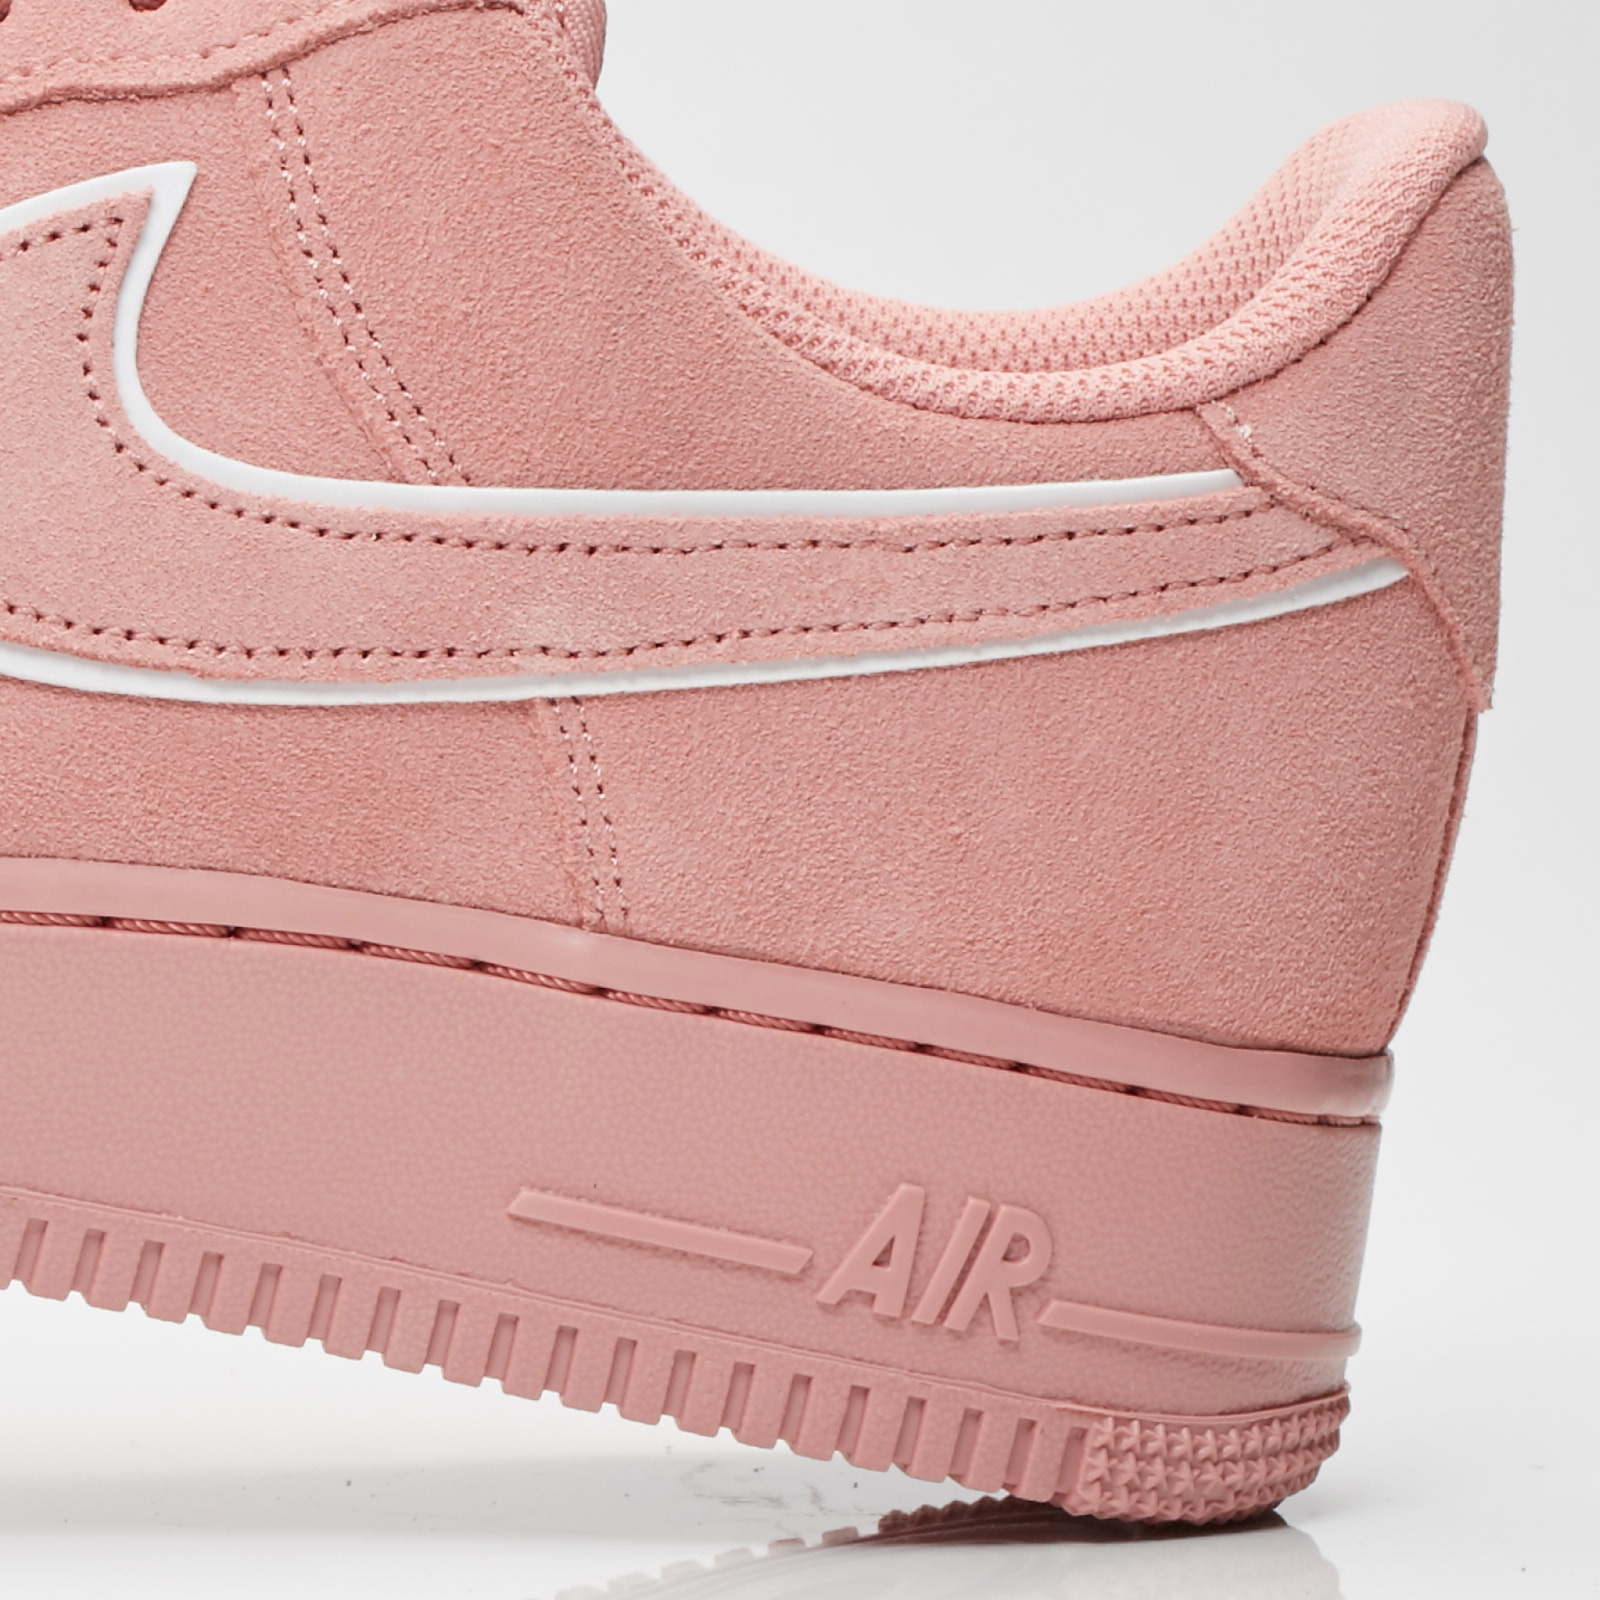 fc57e38c9177a Nike Air Force 1 07 lv8 Suede - Aa1117-601 - Sneakersnstuff ...